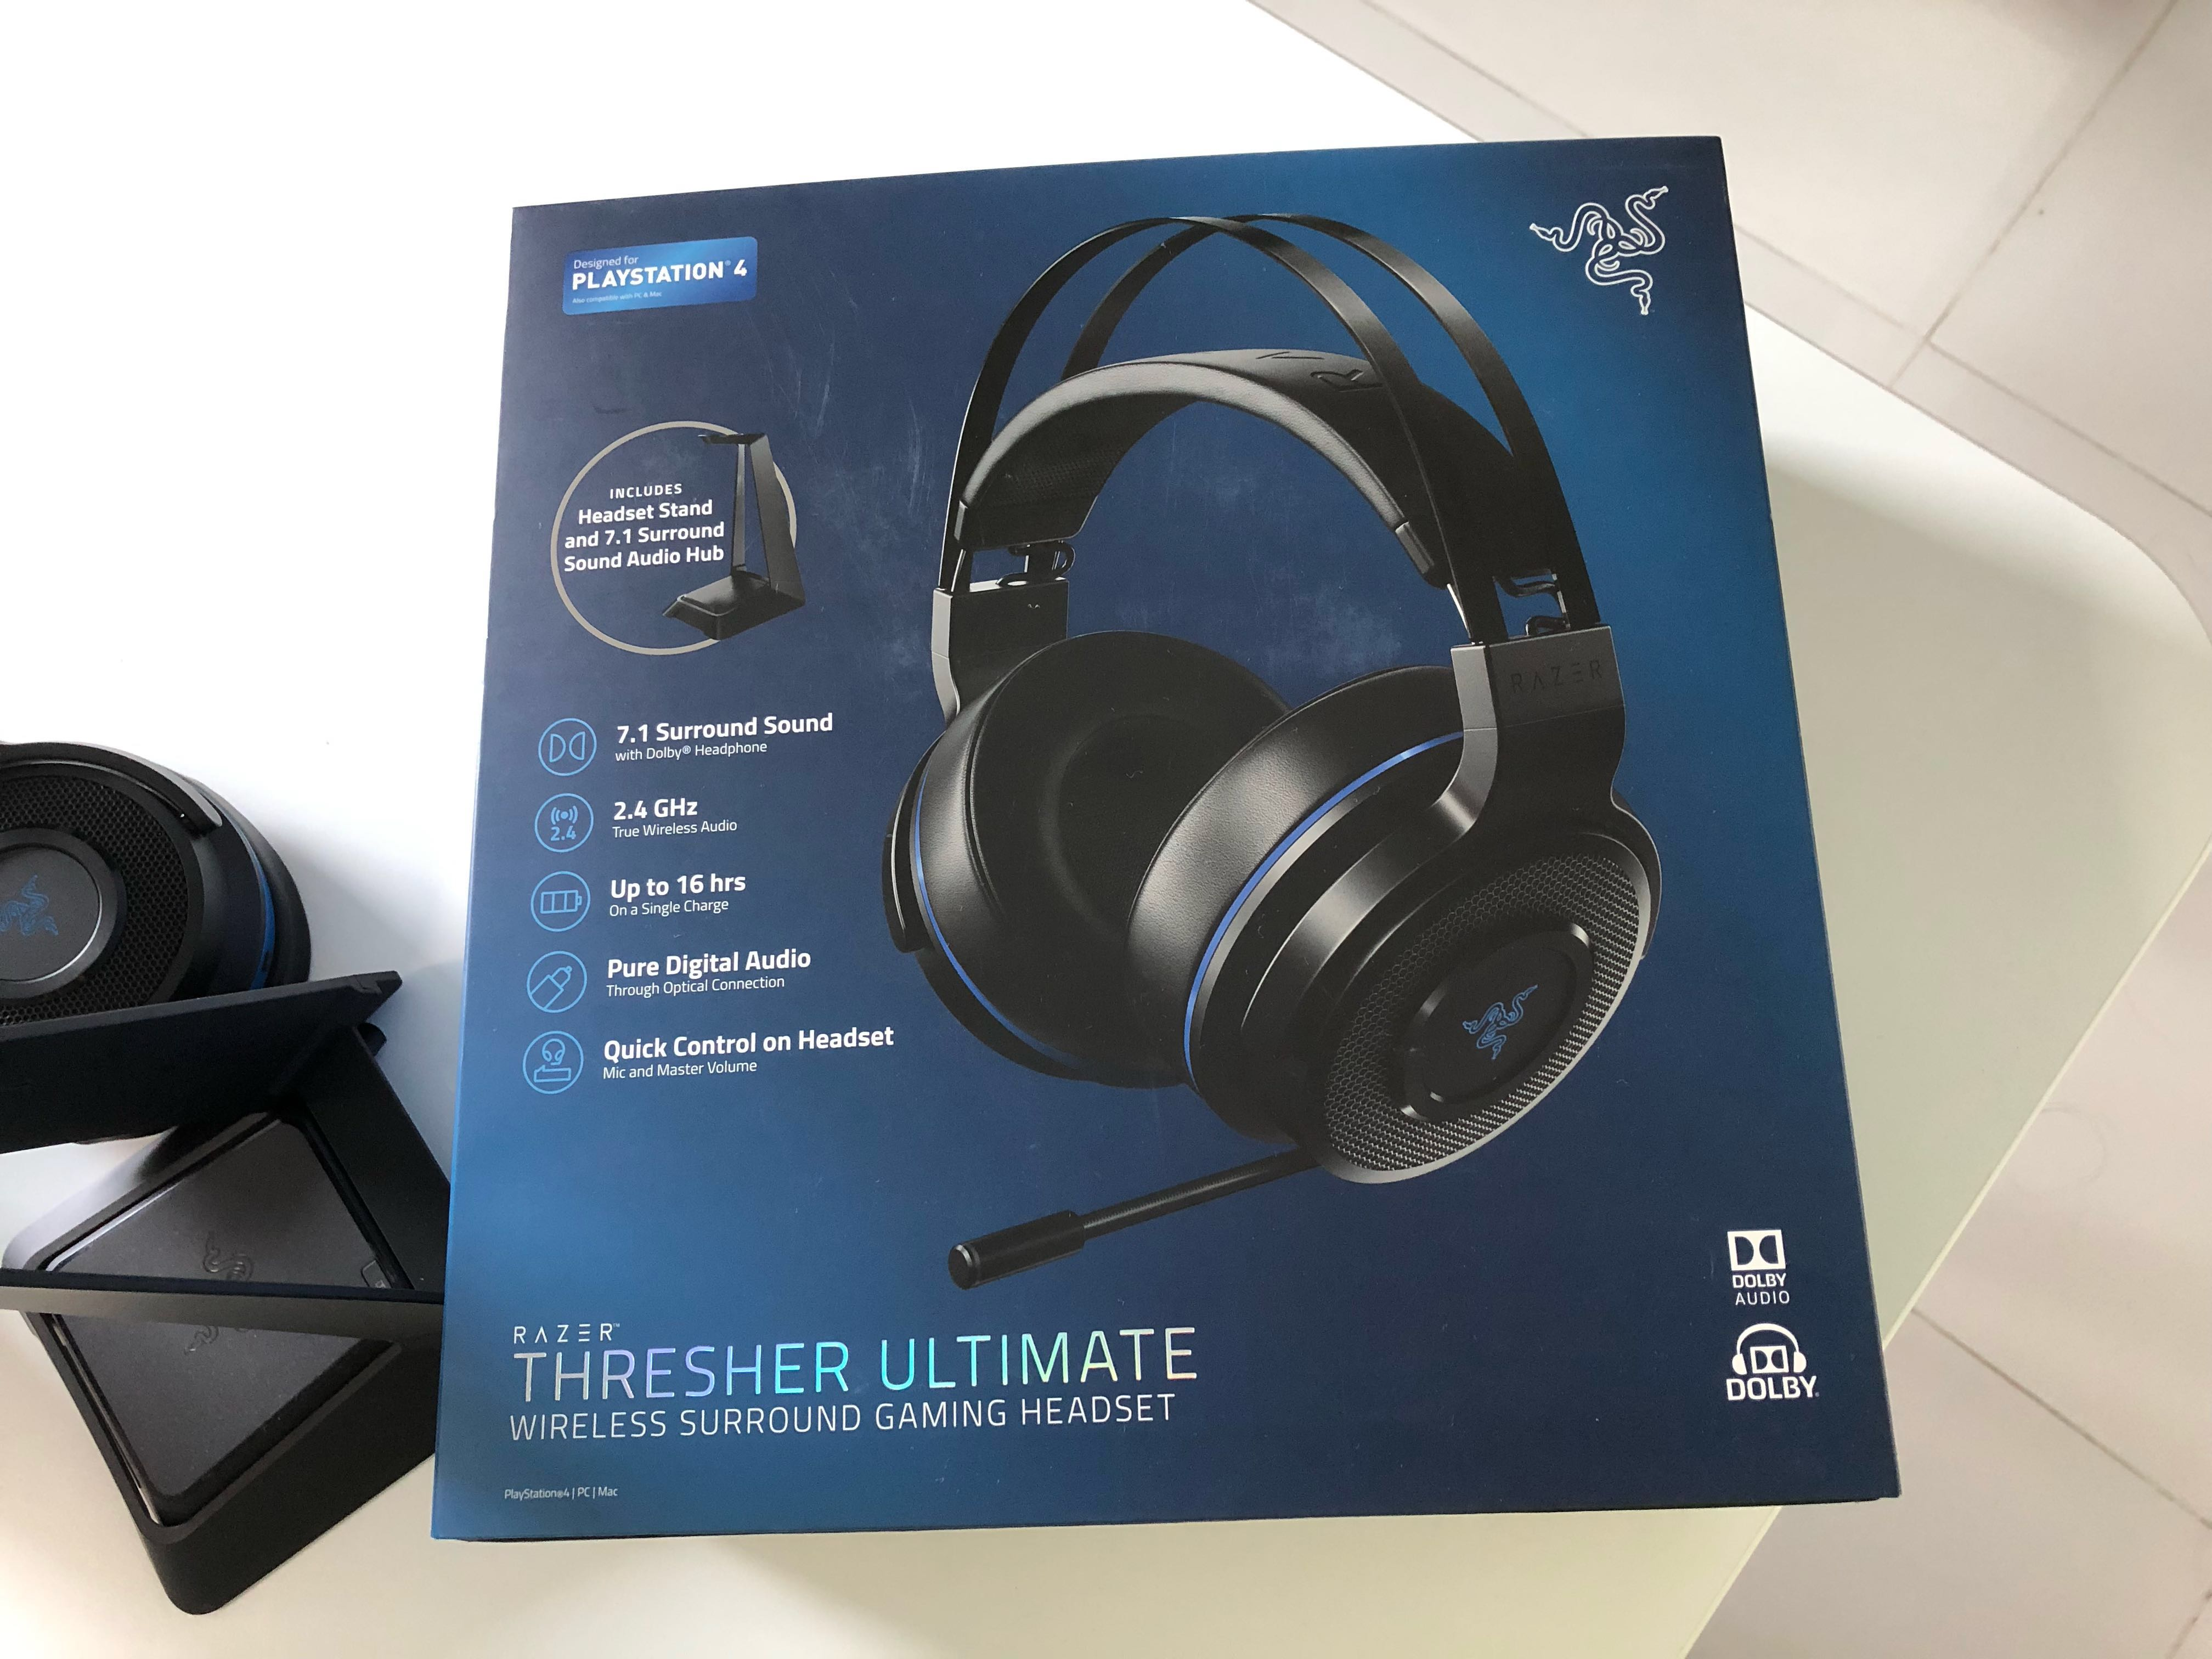 e9e142c9198 Razer Thresher Ultimate Wireless Surround Gaming Headset for PS4,  Electronics, Audio on Carousell